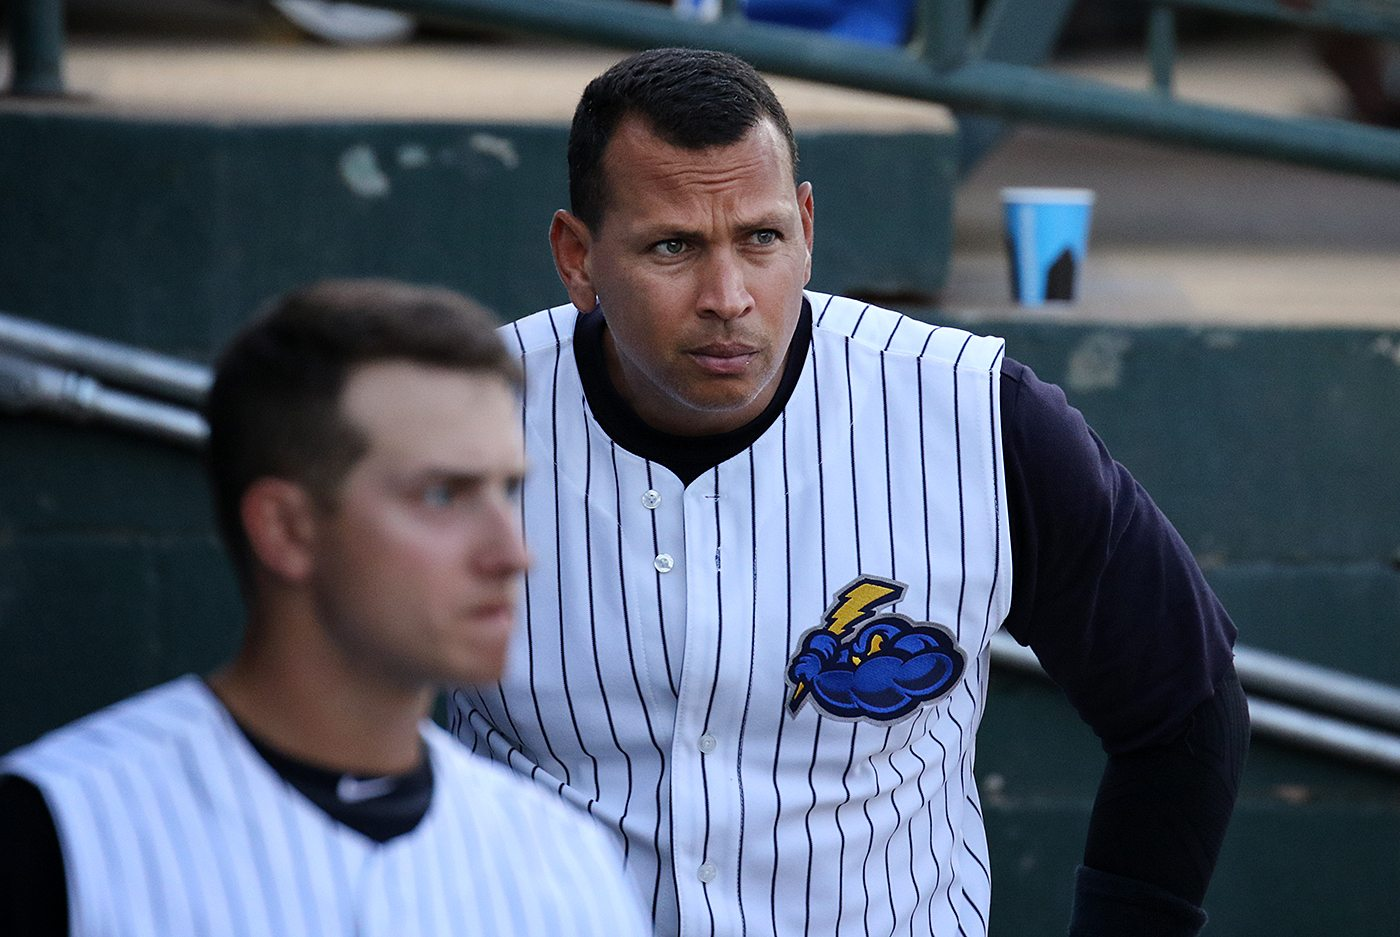 New York Yankees slugger Alex Rodriguez in the dugout at ARM & HAMMER Park in Trenton on Wednesday, May 25, 2016 during the second inning of a game against the New Hampshire Fisher Cats. Rodriguez joined the Double A Yankee farm team for a second day as part of a rehab assignment. Photo by Martin Griff